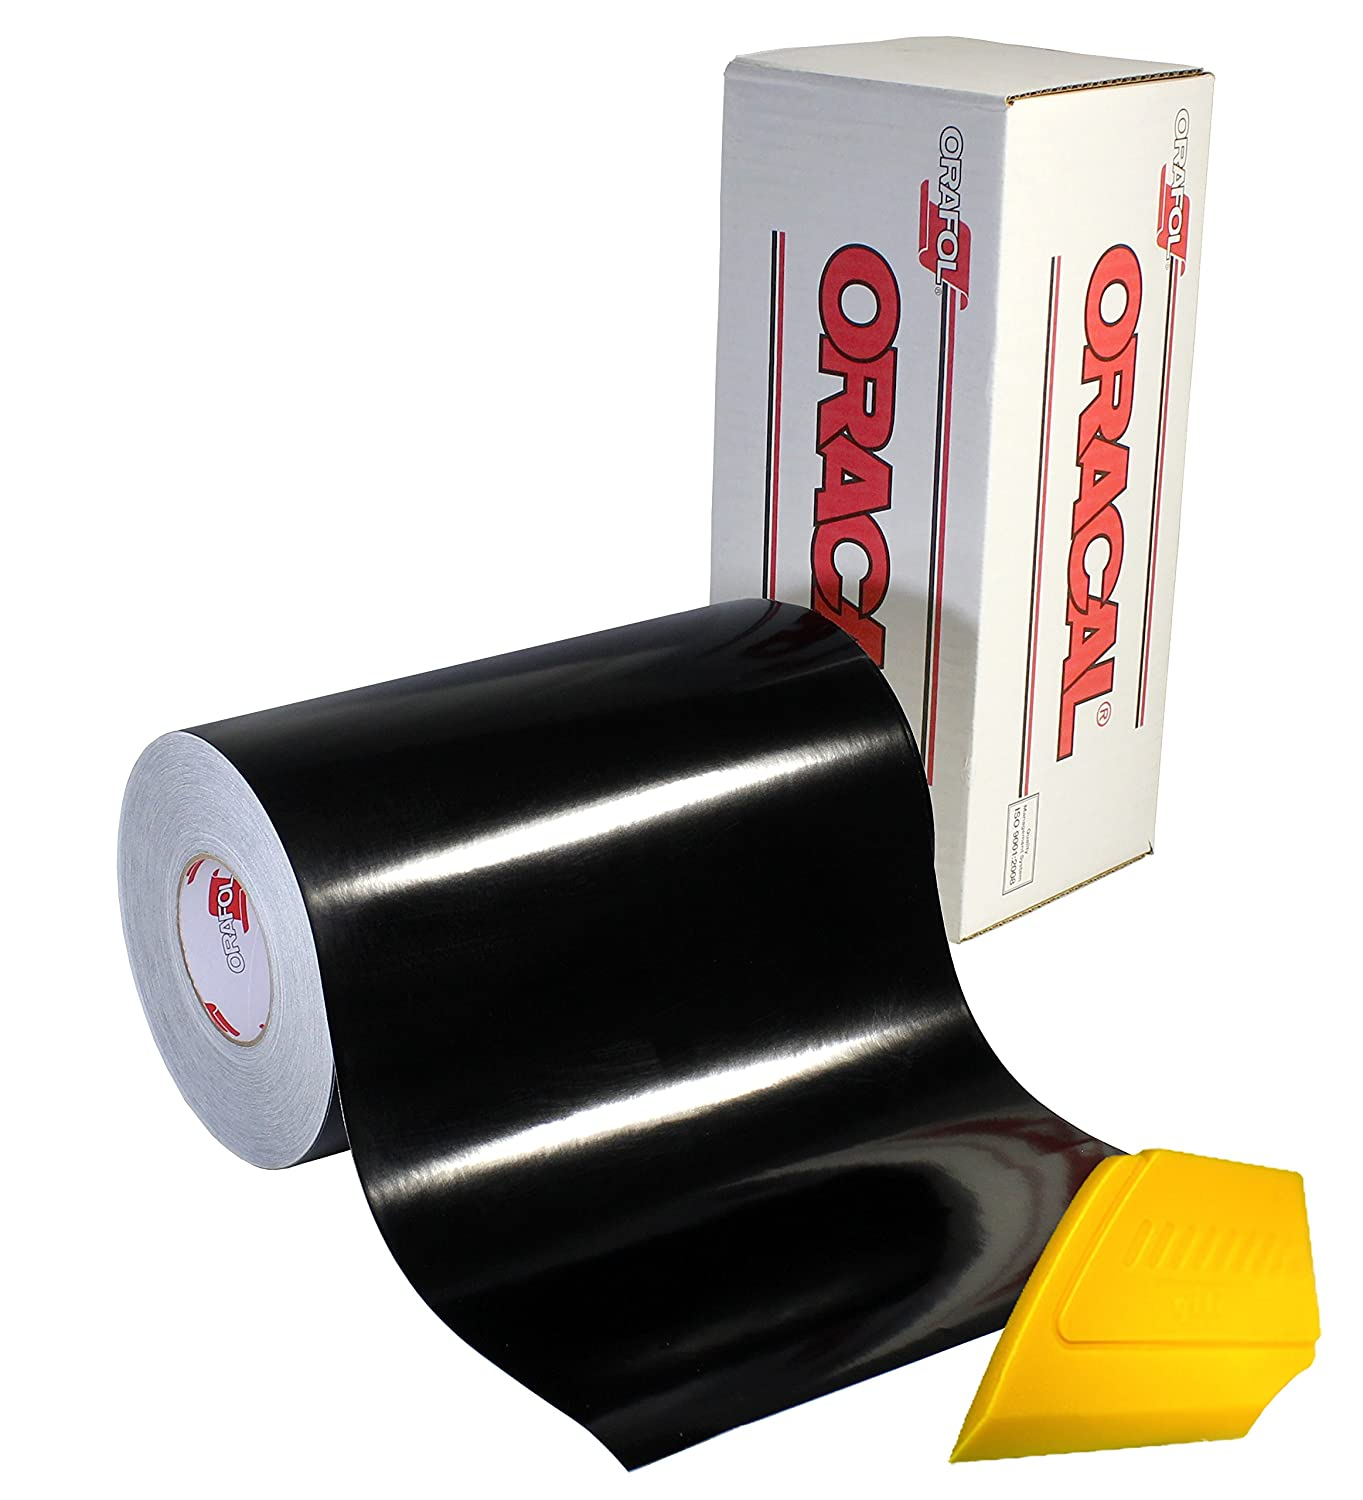 12 x 5ft, Black ORACAL 651 Multi-Colored Vinyl Solvent-Based Adhesive-Backed Calendared Wrap Decals w//Yellow Multi-Purpose Squeegee